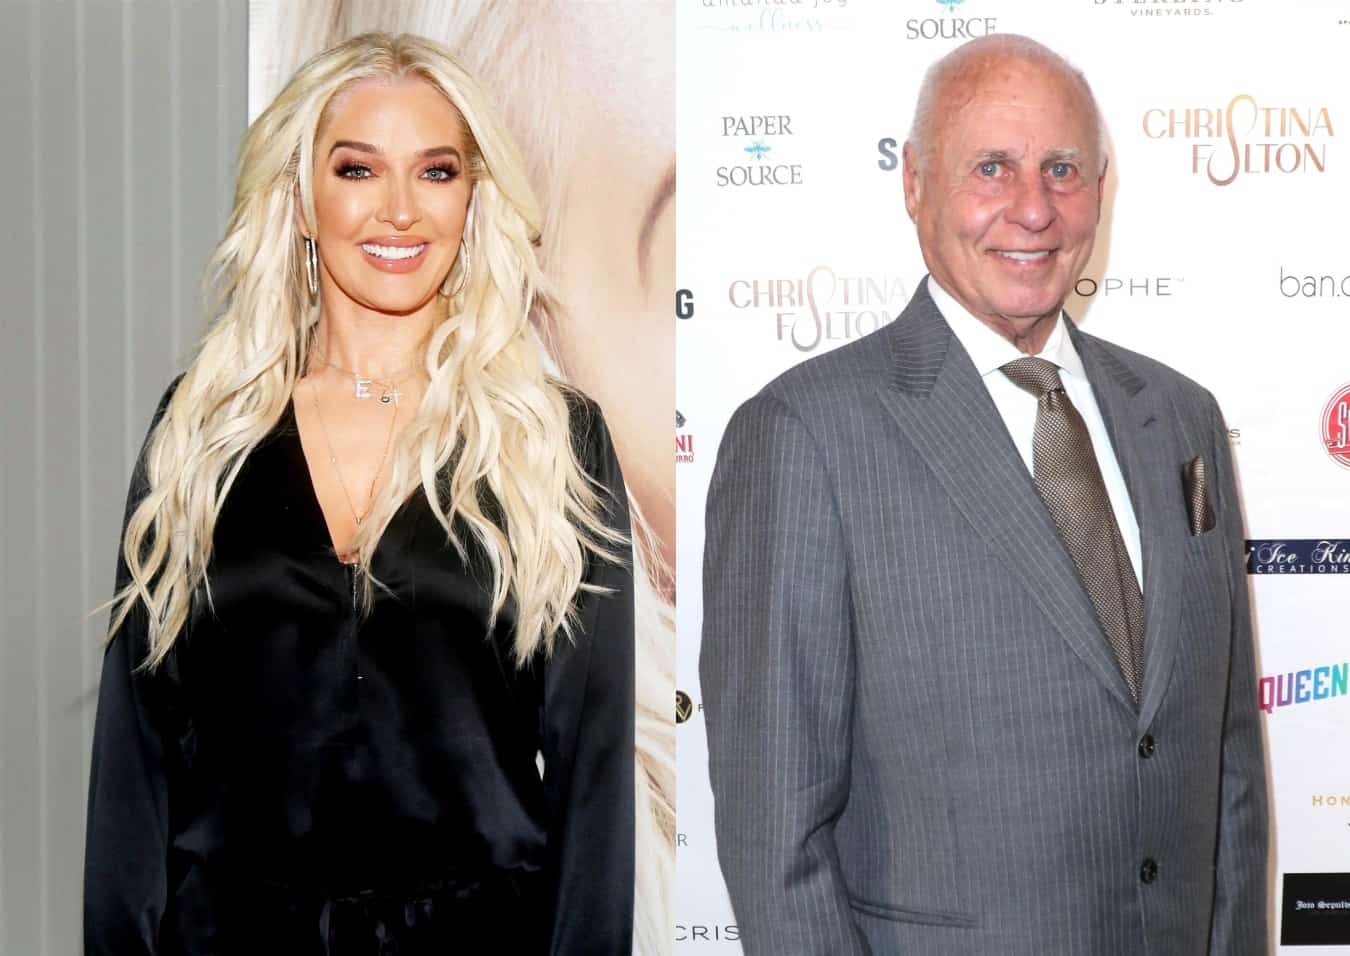 Thomas Girardi's Trustee to Obtain Counsel to Sue Erika Jayne as the RHOBH Star is Accused of Receiving and Hiding Money From Her Estranged Husband